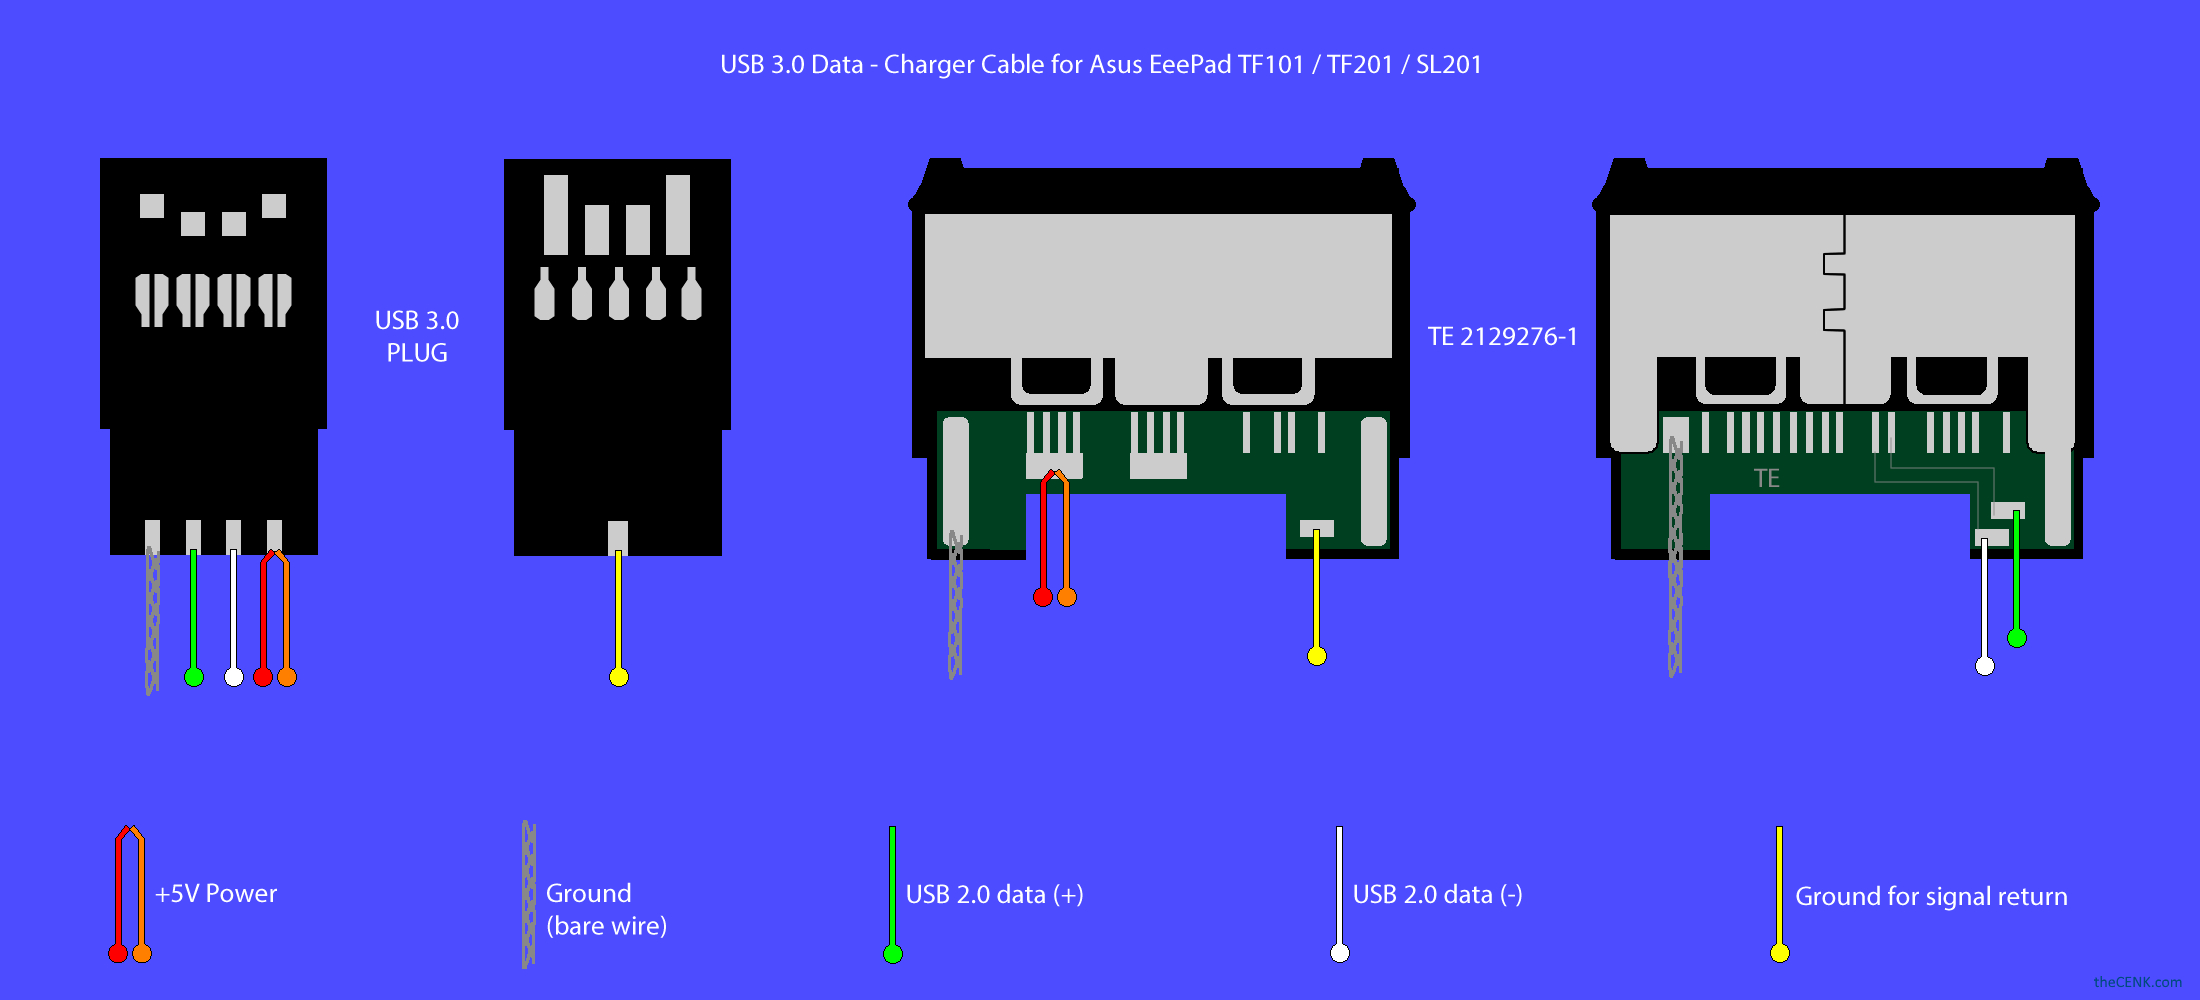 Usb 3.0 Data – Charger Cable For Asus Eeepad Tf101 / Tf201 / Sl201 - Wiring Diagram Usb A To A